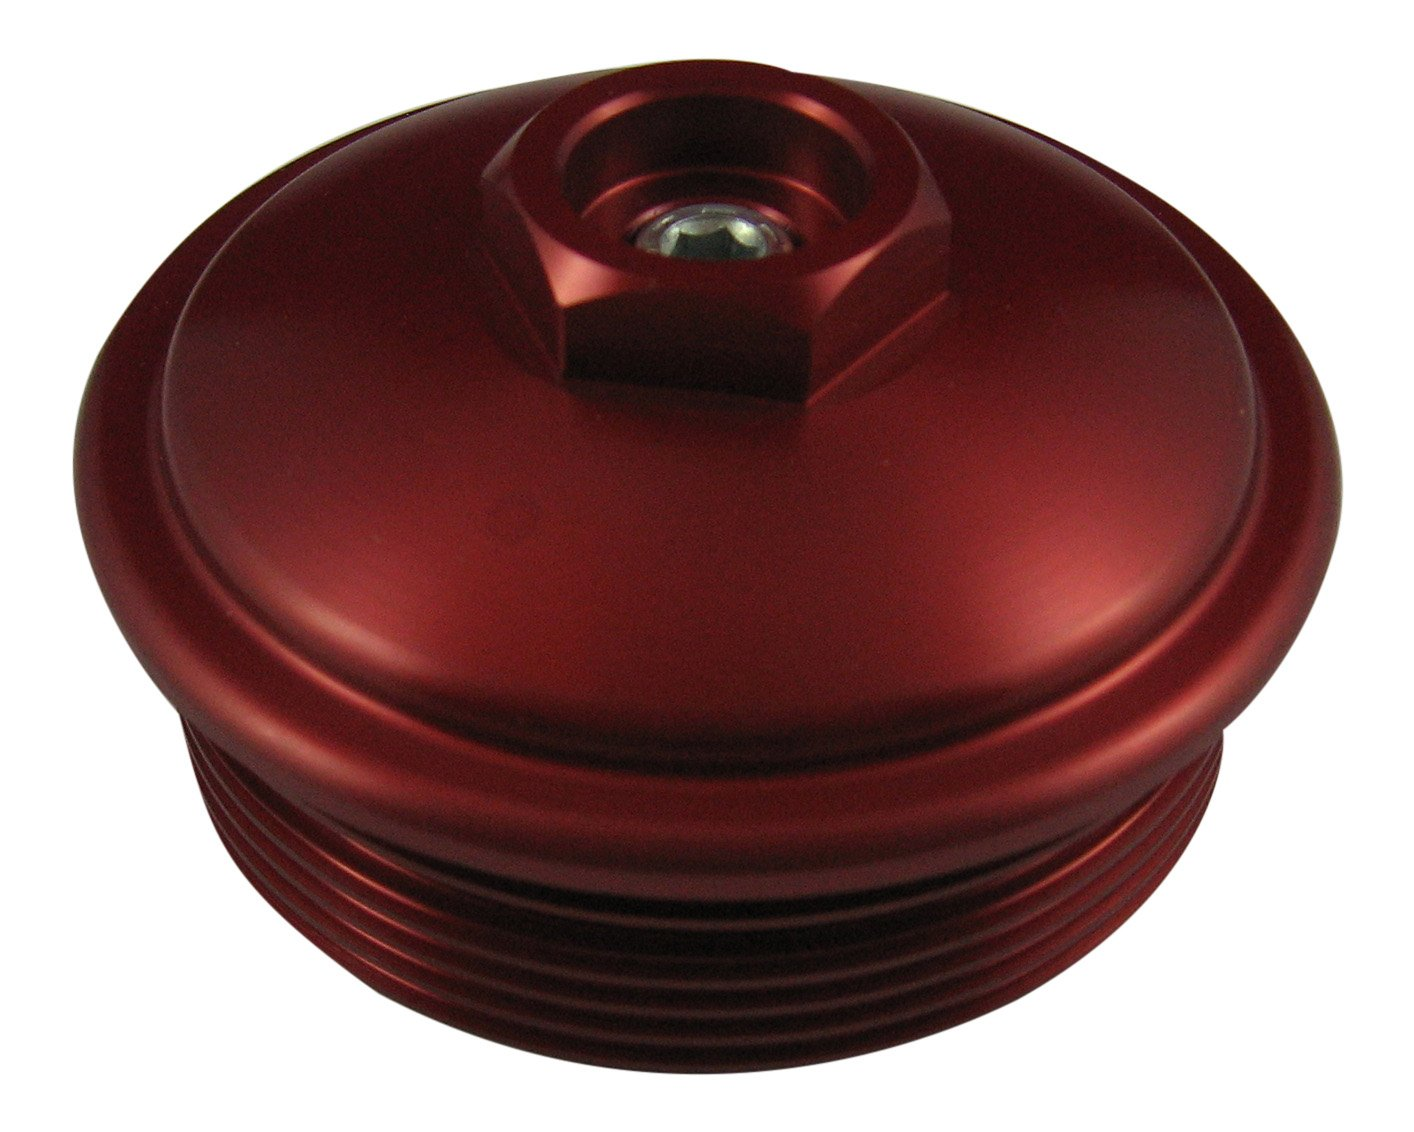 70off Accuratediesel 60l Powerstroke Red Billet Aluminum Fuel 2006 Jeep Commander Filter Cap With Pressure Test